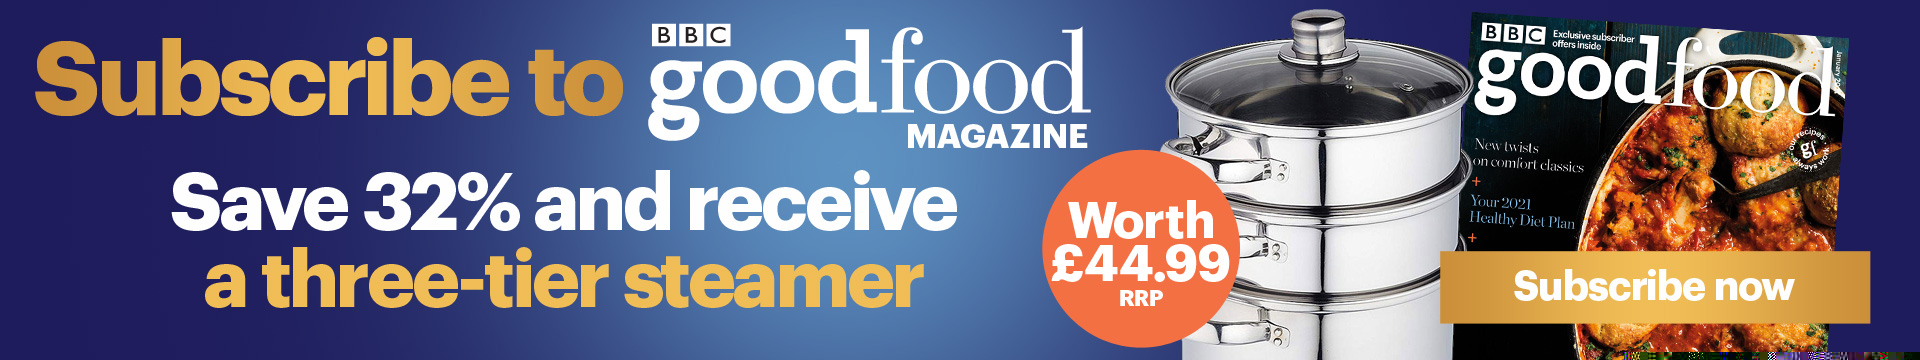 BBC Good Food Magazine save 32% and receive a three-tier steamer